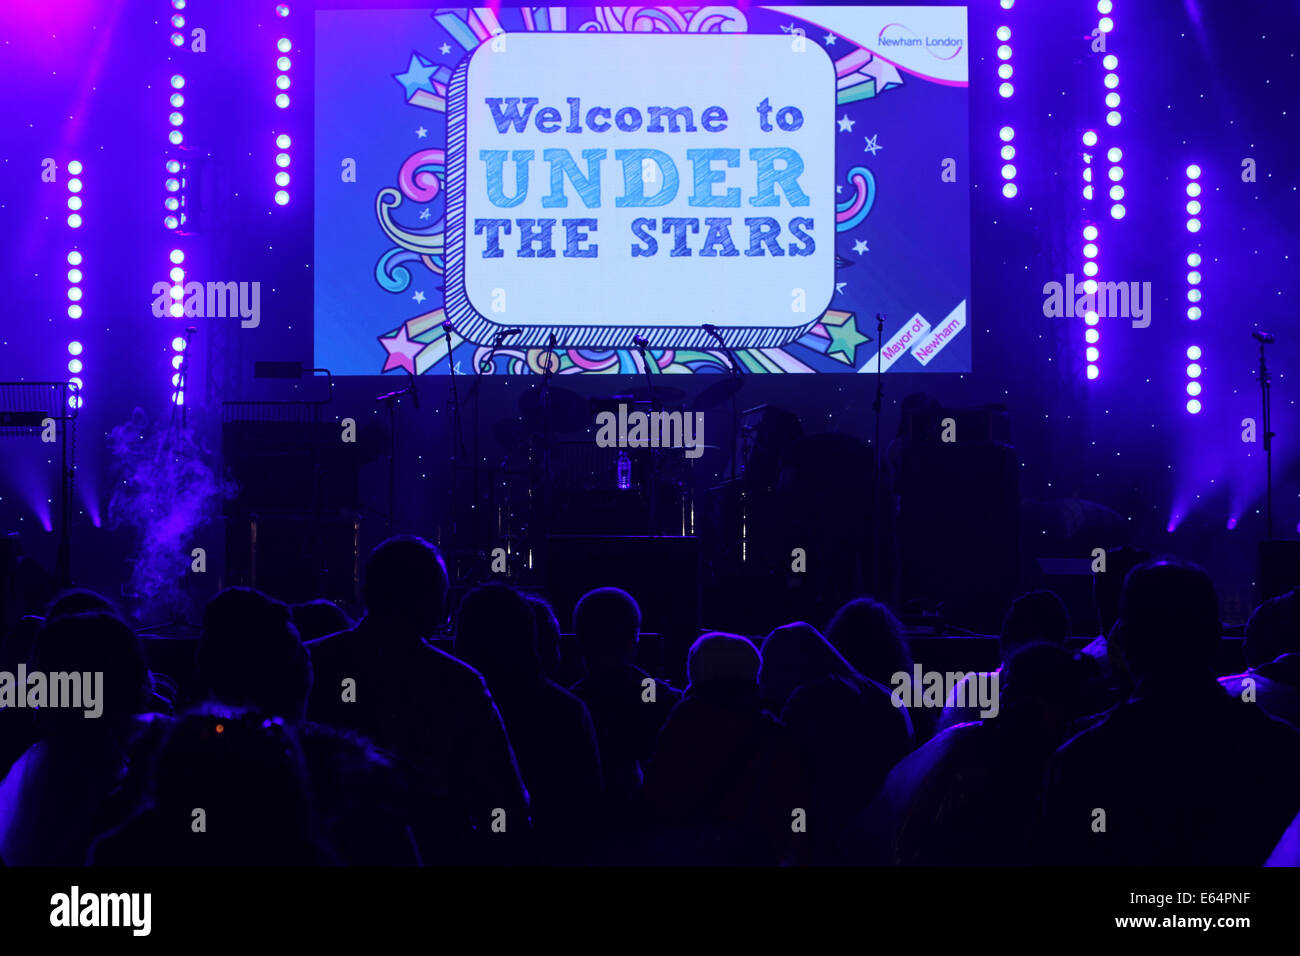 Under the stars banner projected on stage ahead of the Sister Sledge perfornance. Credit: David Mbiyu/ Alamy Live - Stock Image